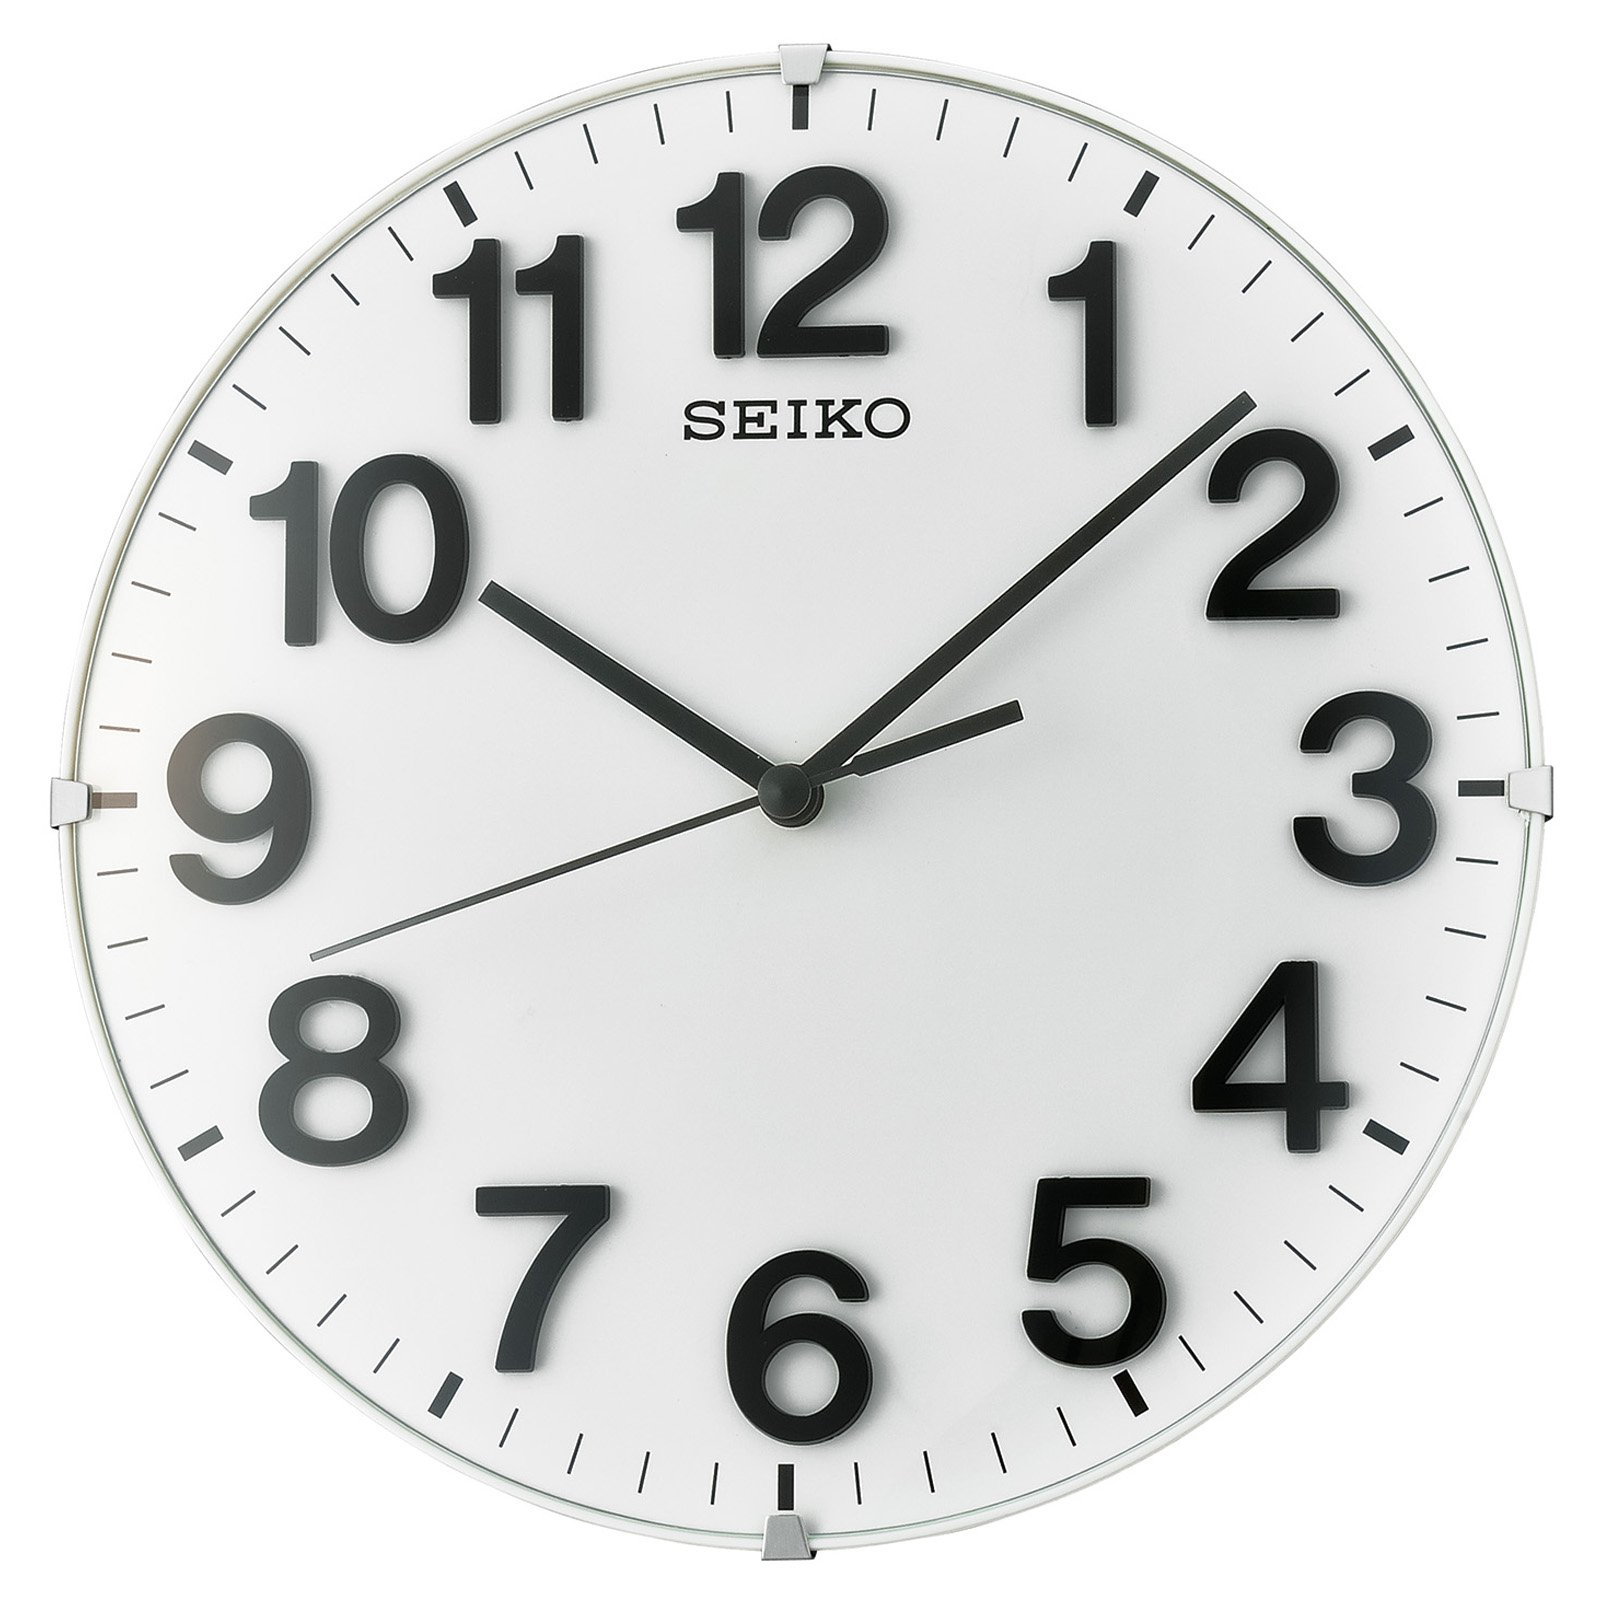 Seiko Clic Wall Clock With Quiet Sweep Second Hand 8 25 In